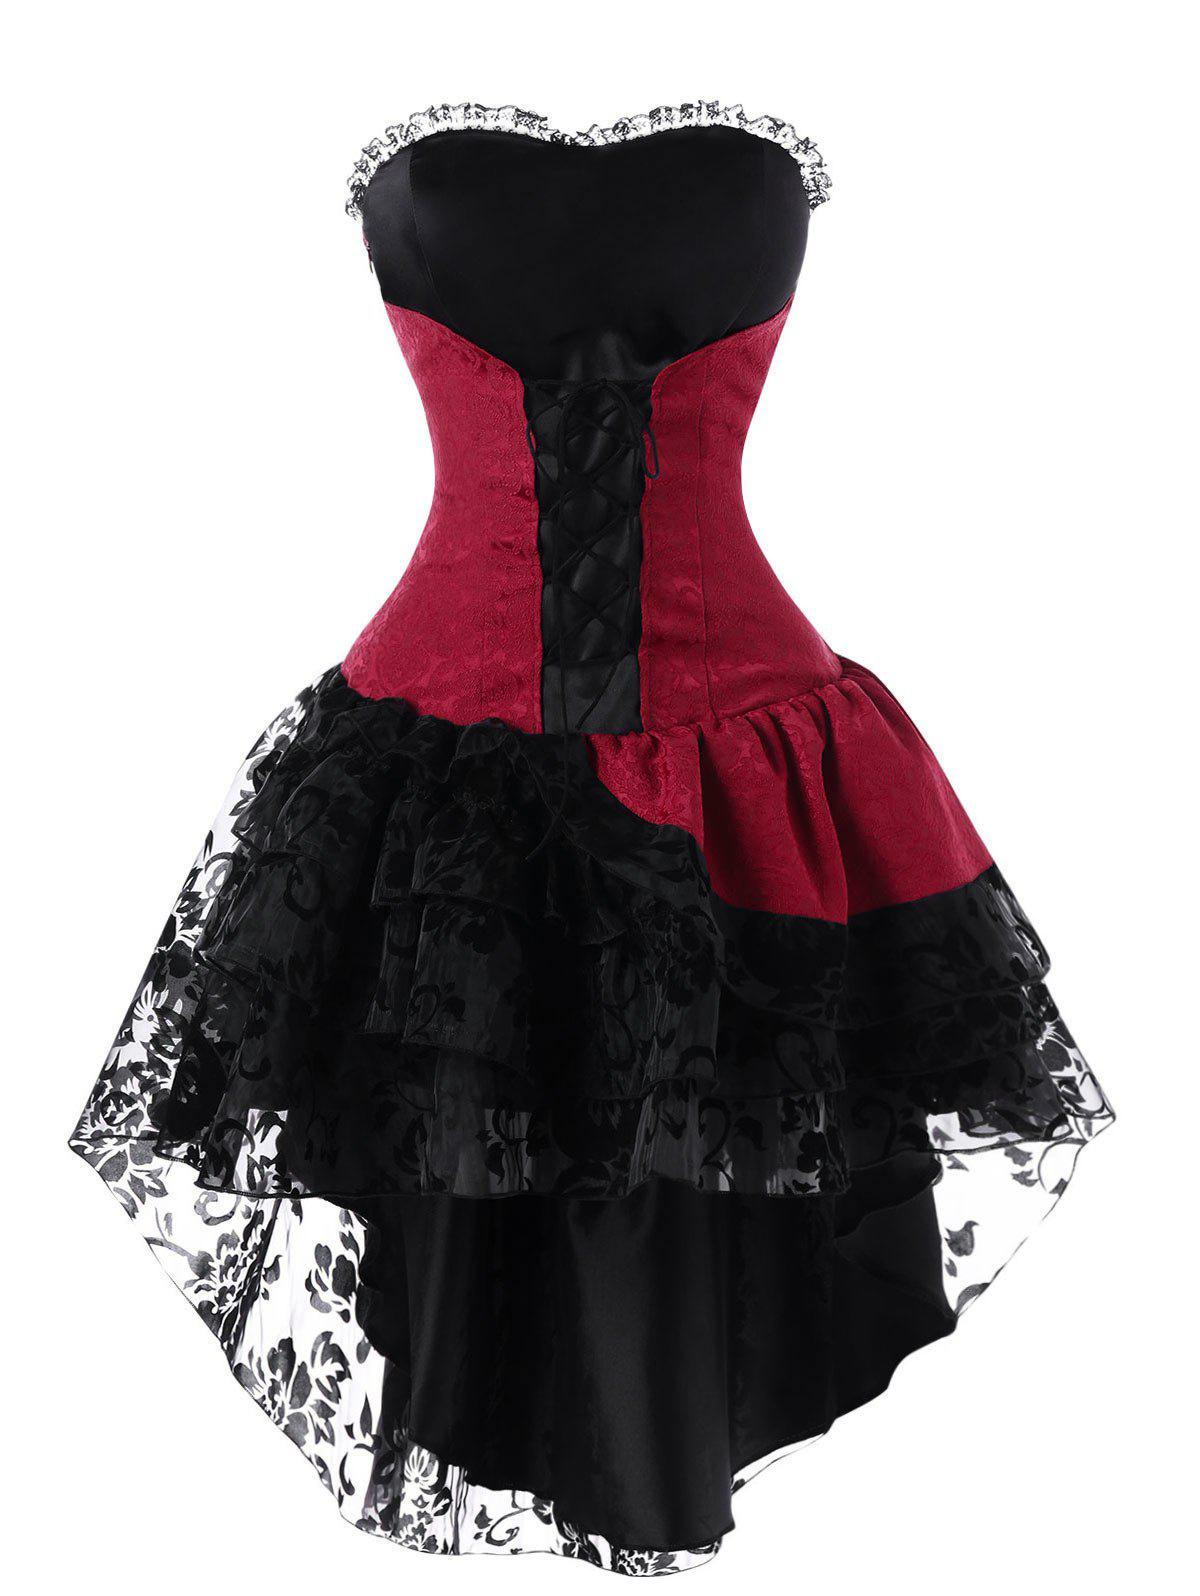 Lace Up Layered High Low Strapless Corset DressWOMEN<br><br>Size: XL; Color: RED WITH BLACK; Style: Gothic; Material: Polyester; Silhouette: A-Line; Dresses Length: Mini; Neckline: Sweetheart Neck; Sleeve Length: Sleeveless; Embellishment: Lace; Pattern Type: Others; With Belt: No; Season: Fall,Spring; Weight: 0.3400kg; Package Contents: 1 x Dress;